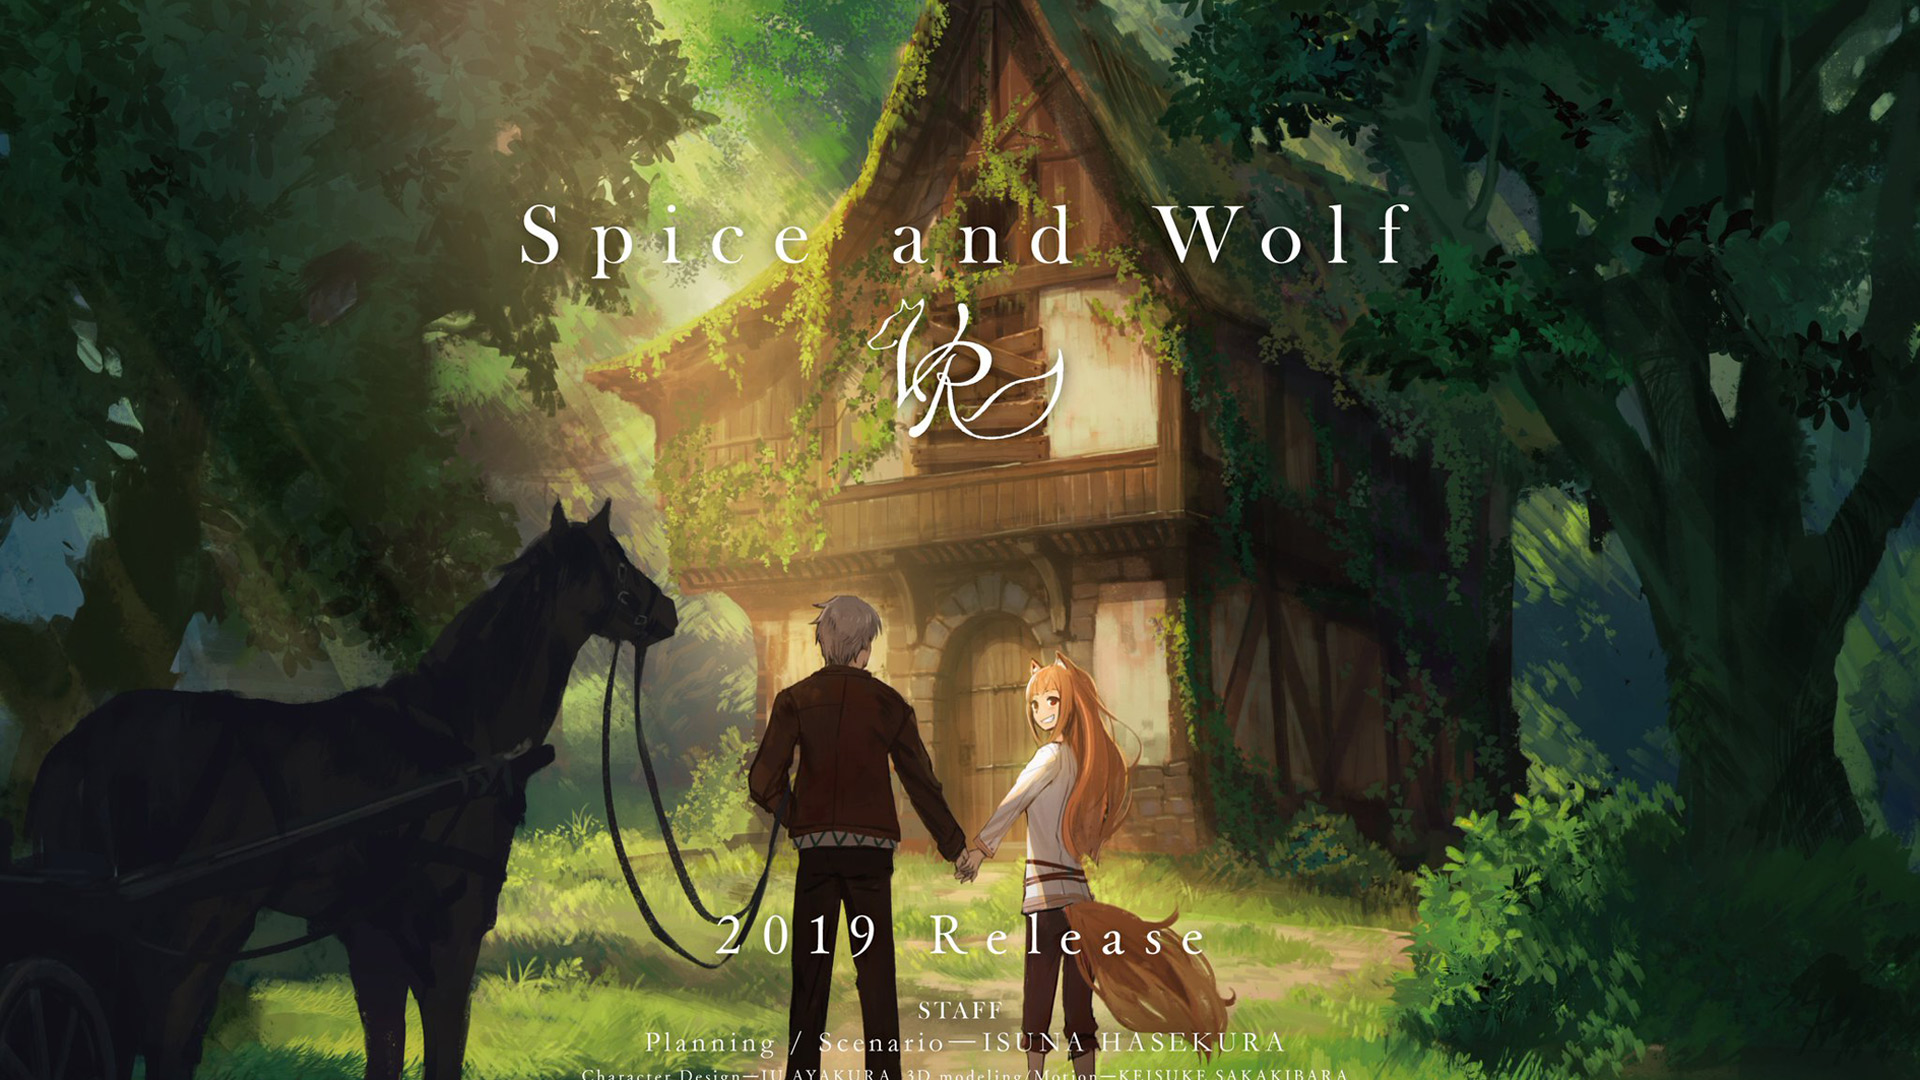 Spice and Wolf VRвыйдет на Switch